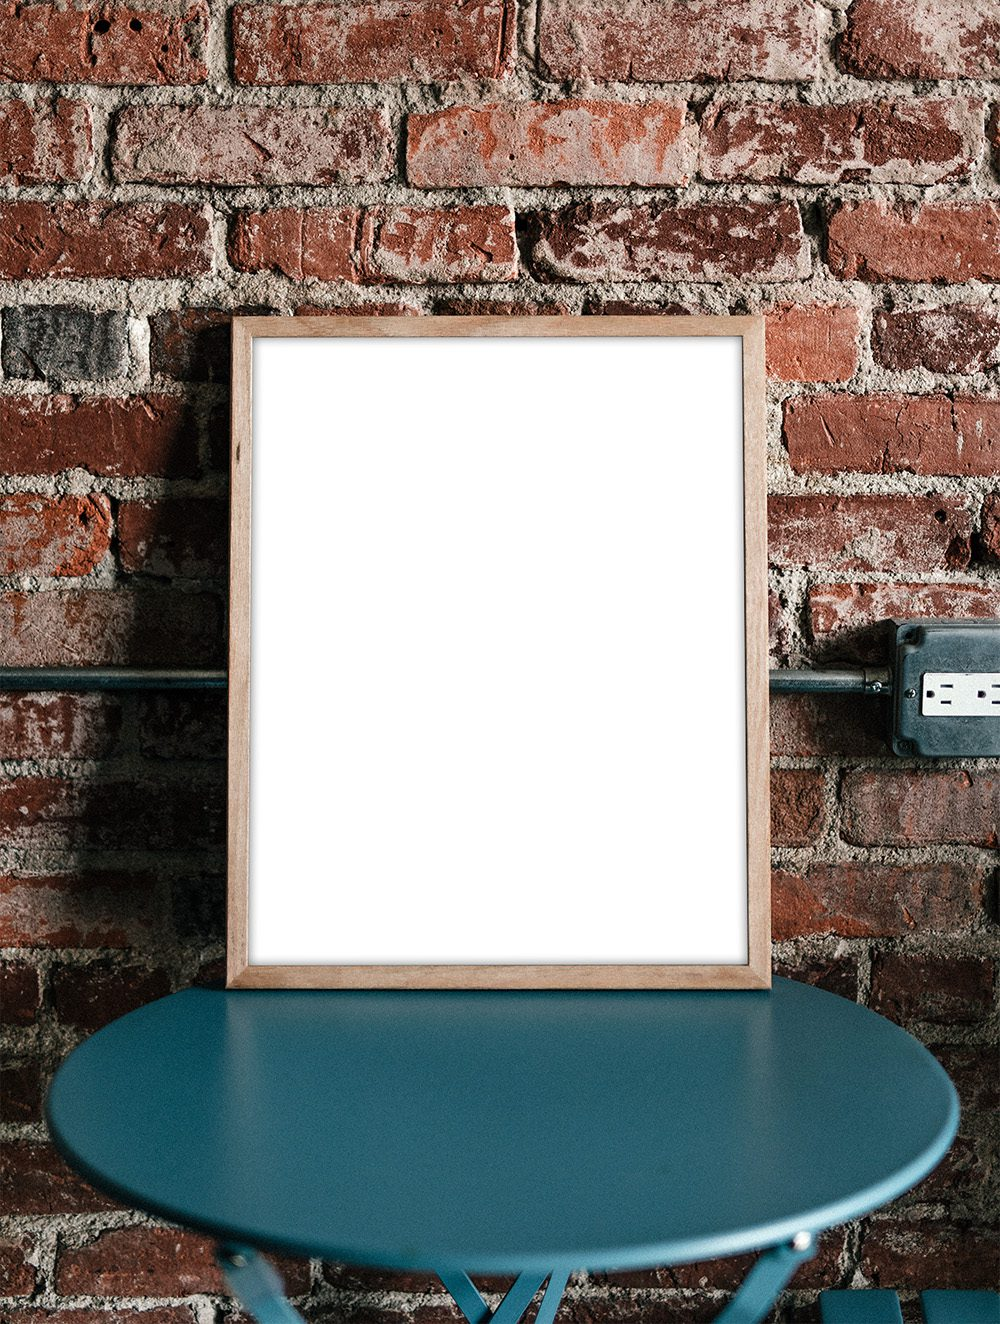 20-wood-frame-for-picture-mockup-photoshop